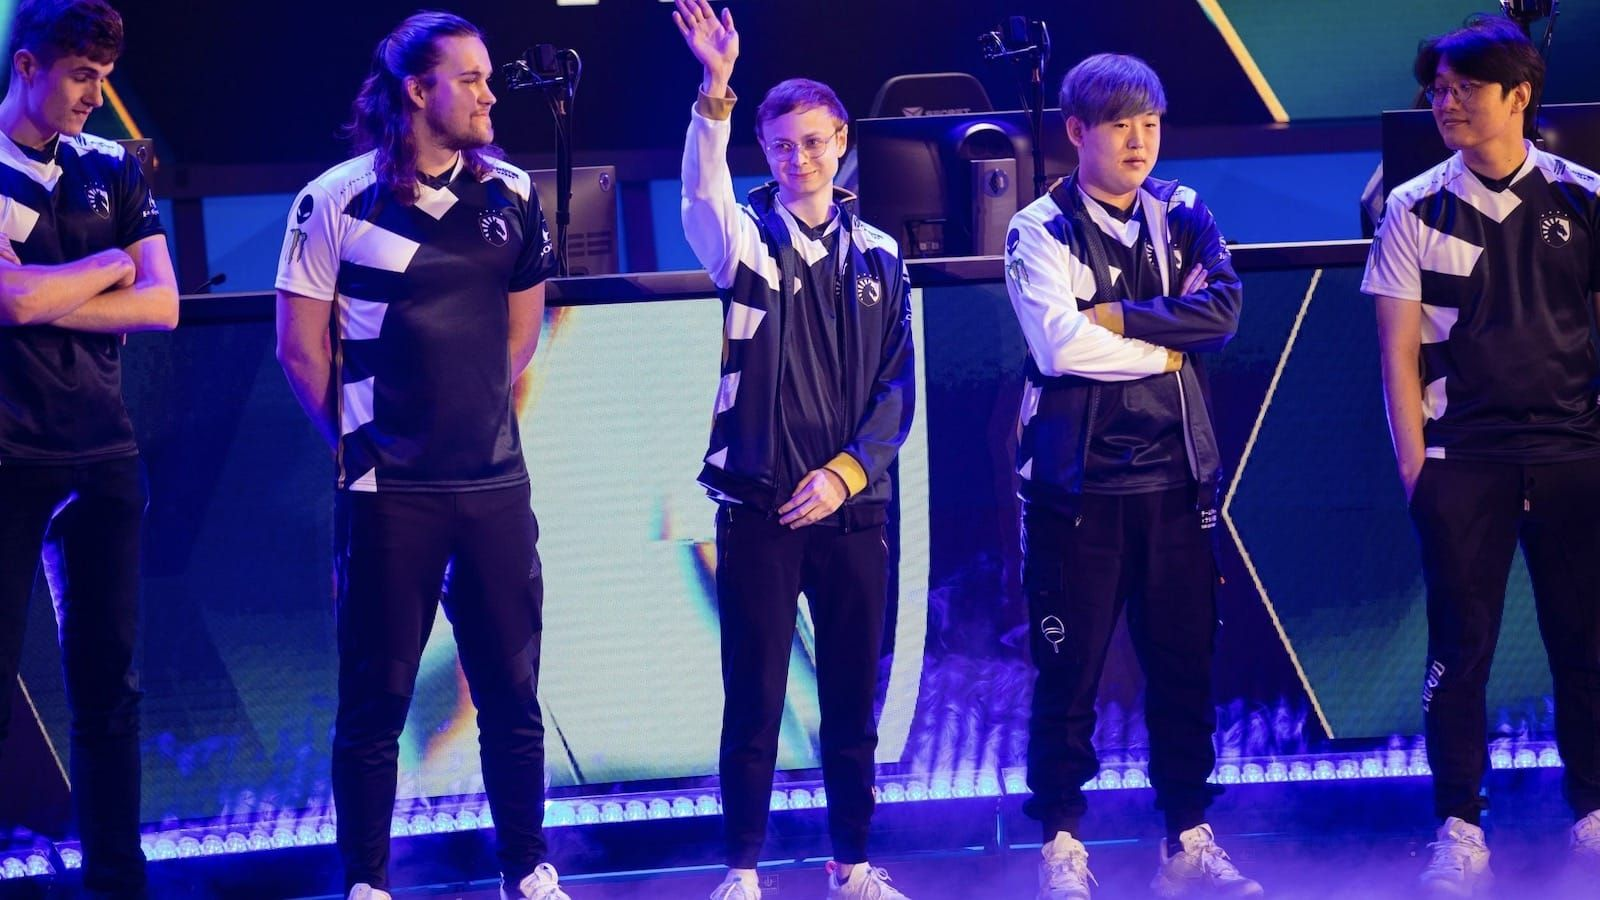 Team Liquid League of Legends team stands on stage before a game